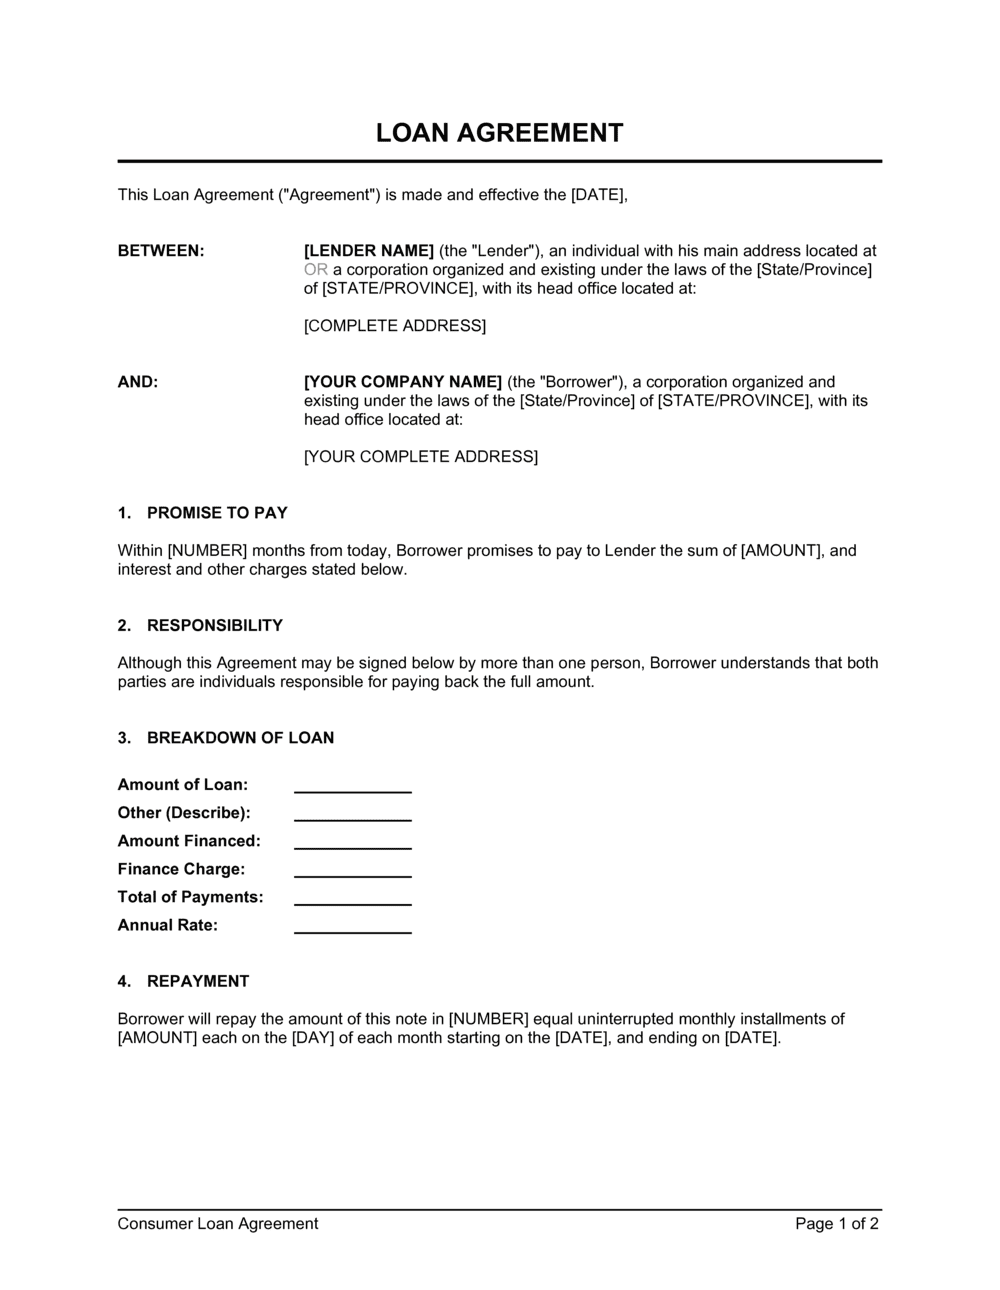 Business-in-a-Box's Loan Agreement Template